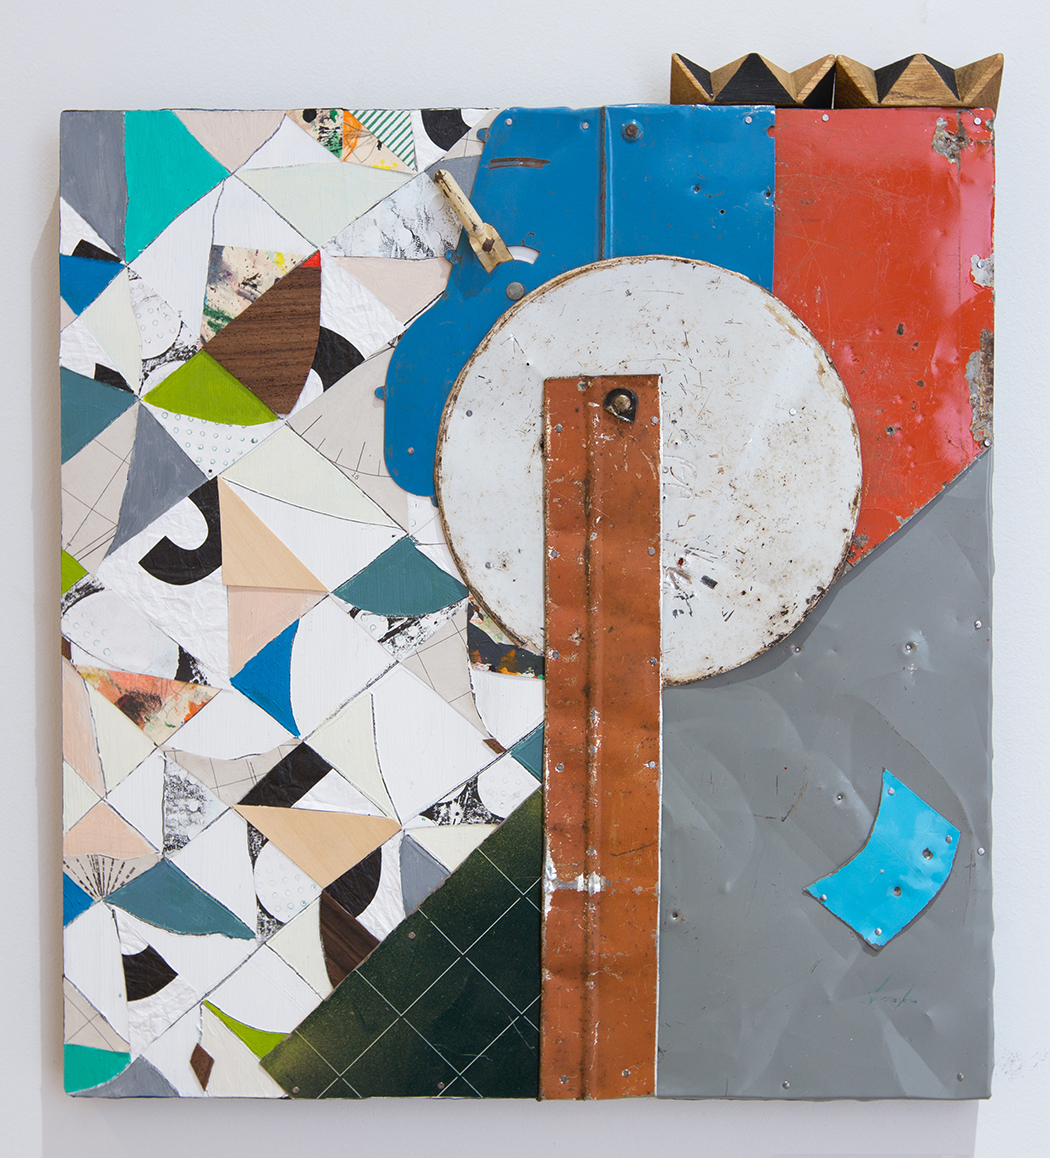 """Tap Dancing on an Uneven Floor,  2017, Acrylic, Flashe Vinyl, Collage, Ink, Found Wood, Tin on Panel, 18 ¾"""" H x 16 ¾"""" W"""